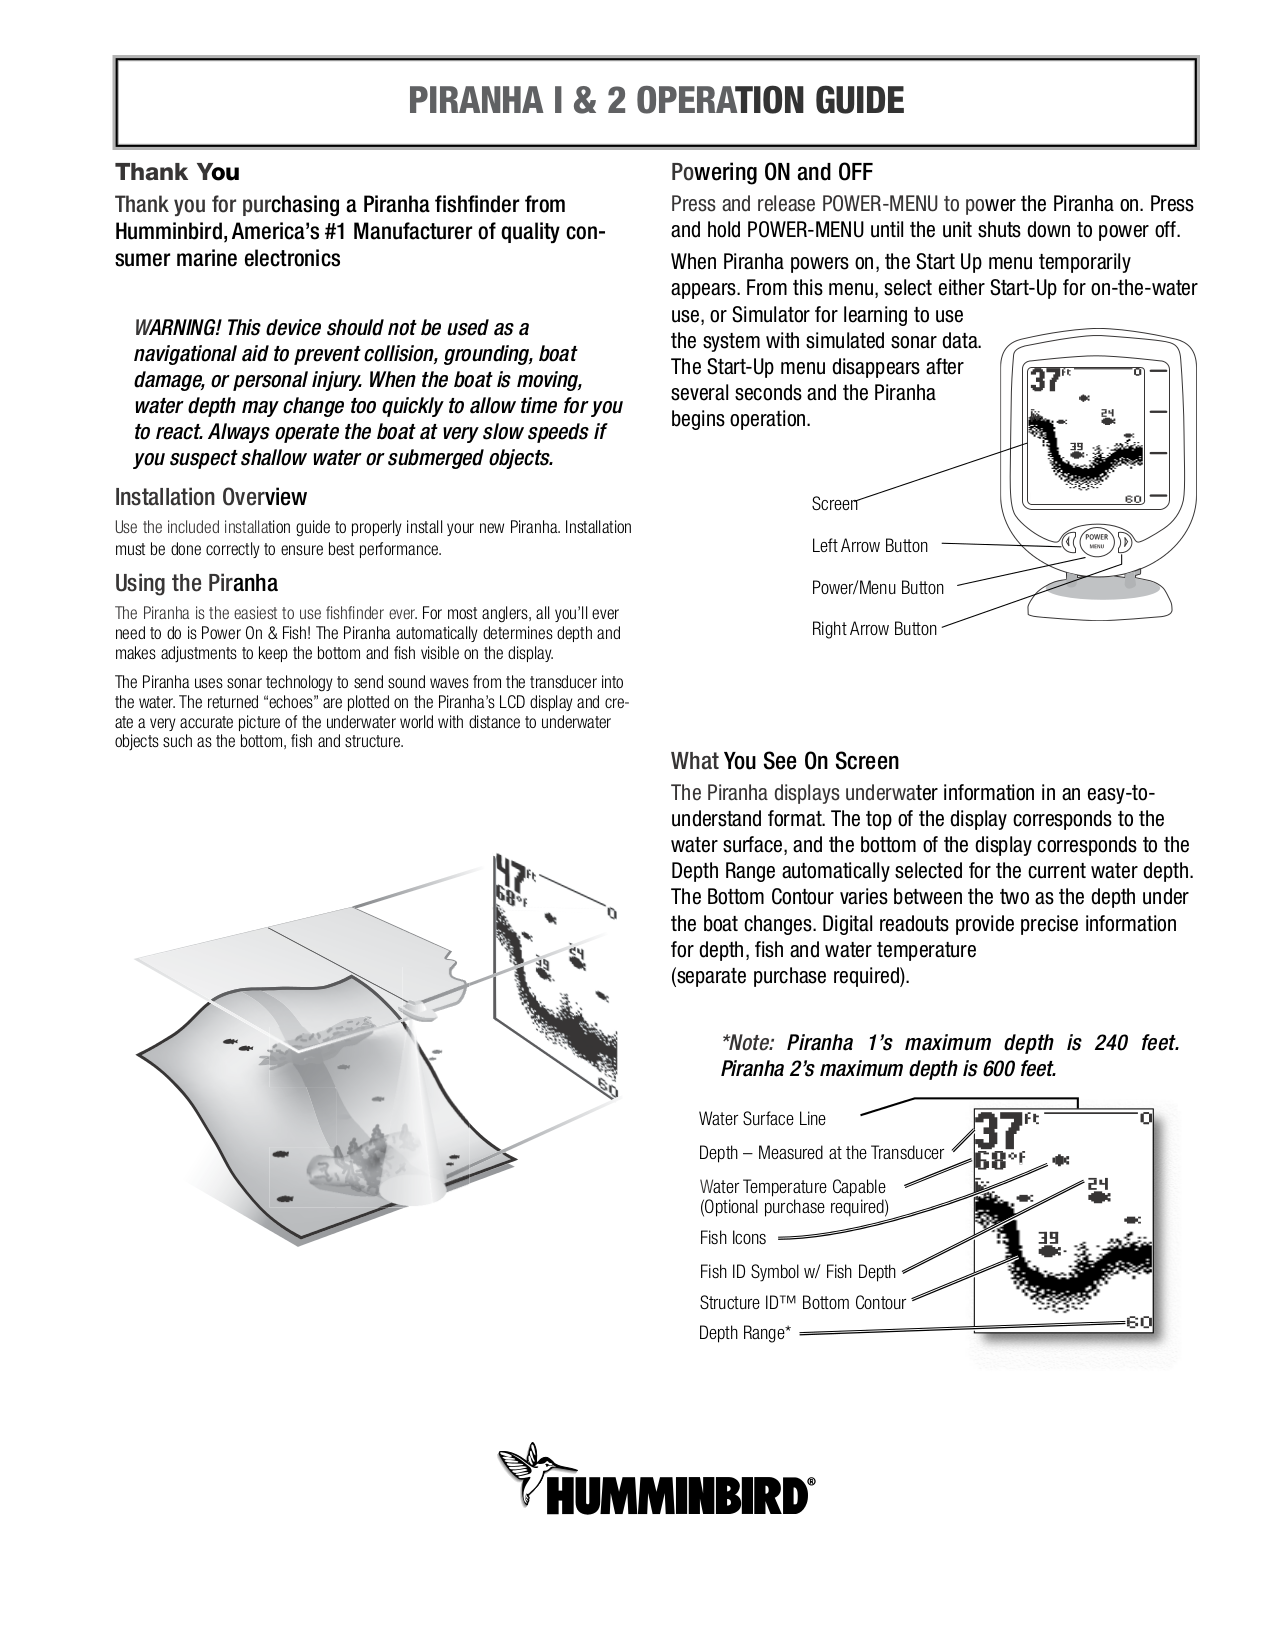 humminbird 170 fish finder manual